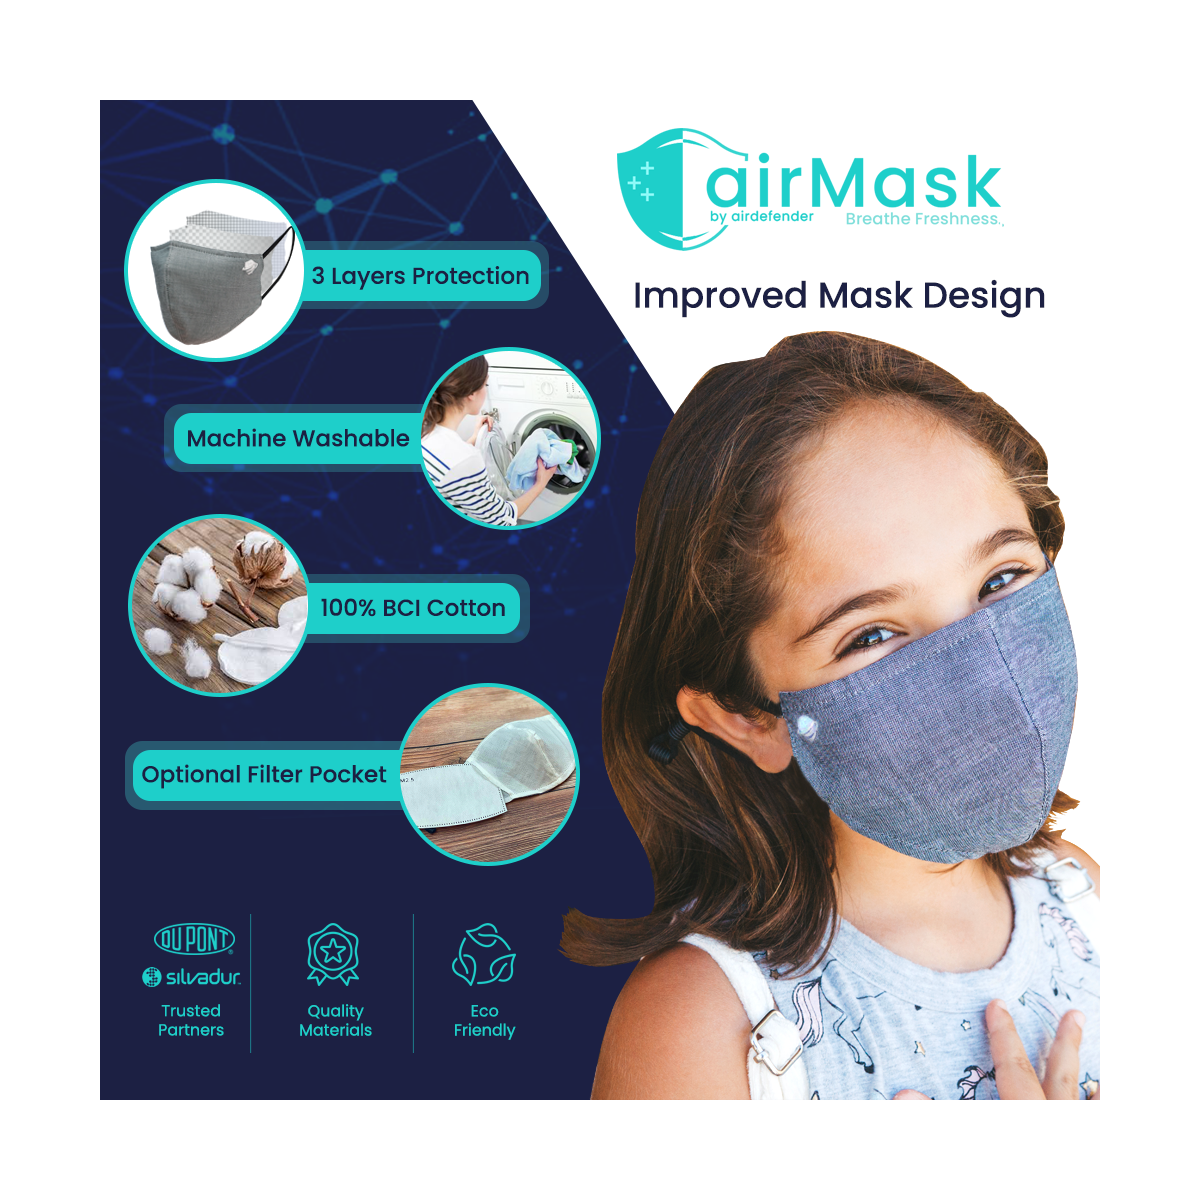 Premium Antimicrobial Washable Face Mask 2 Pack ( Adult Black Grey Only) - A Mask You Will Leave On